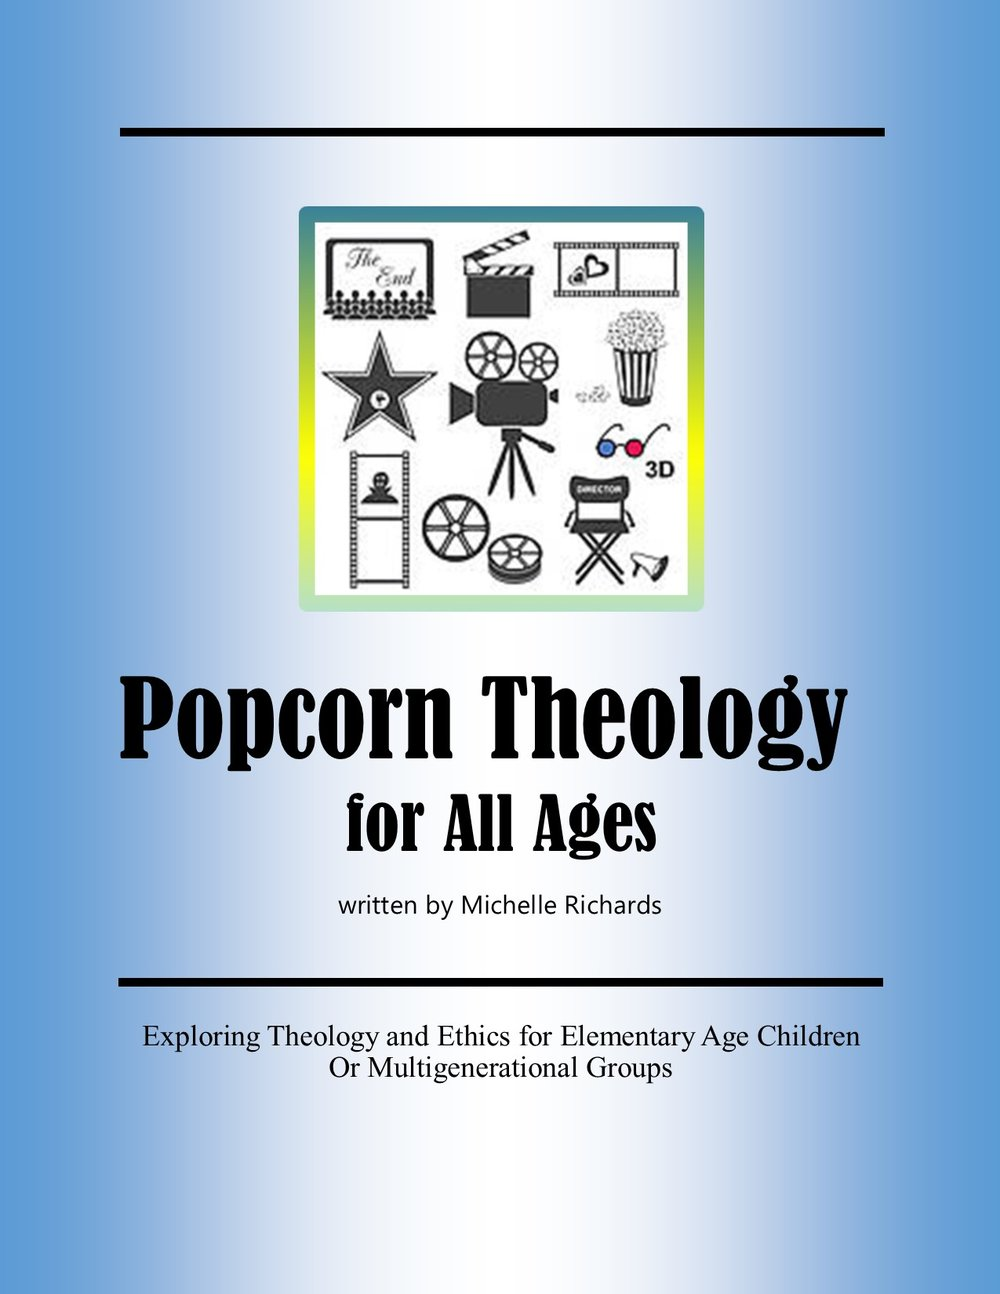 Now Available:       Popcorn Theology for All Ages - Popcorn Theology designed for elementary age children and multigenerational groups. Using primarily G-rated movies (with some PG movies) as excerpts makes this curriculum accessible for all audiences. With age-appropriate discussion questions and activities, this is great for religious education classes or multigenerational family groups.